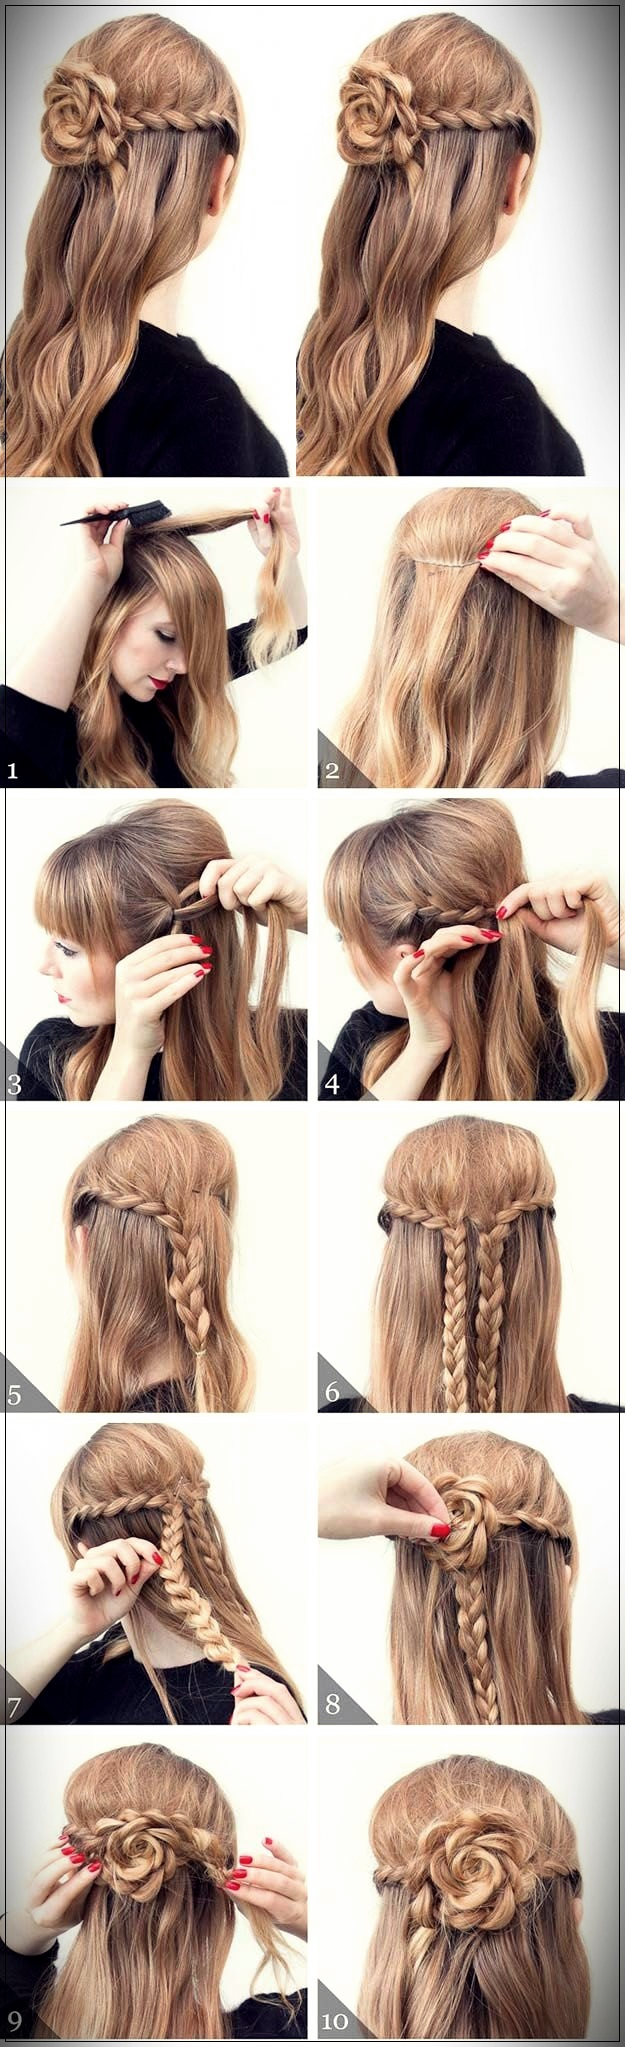 Easy Hairstyles 2019 step by step